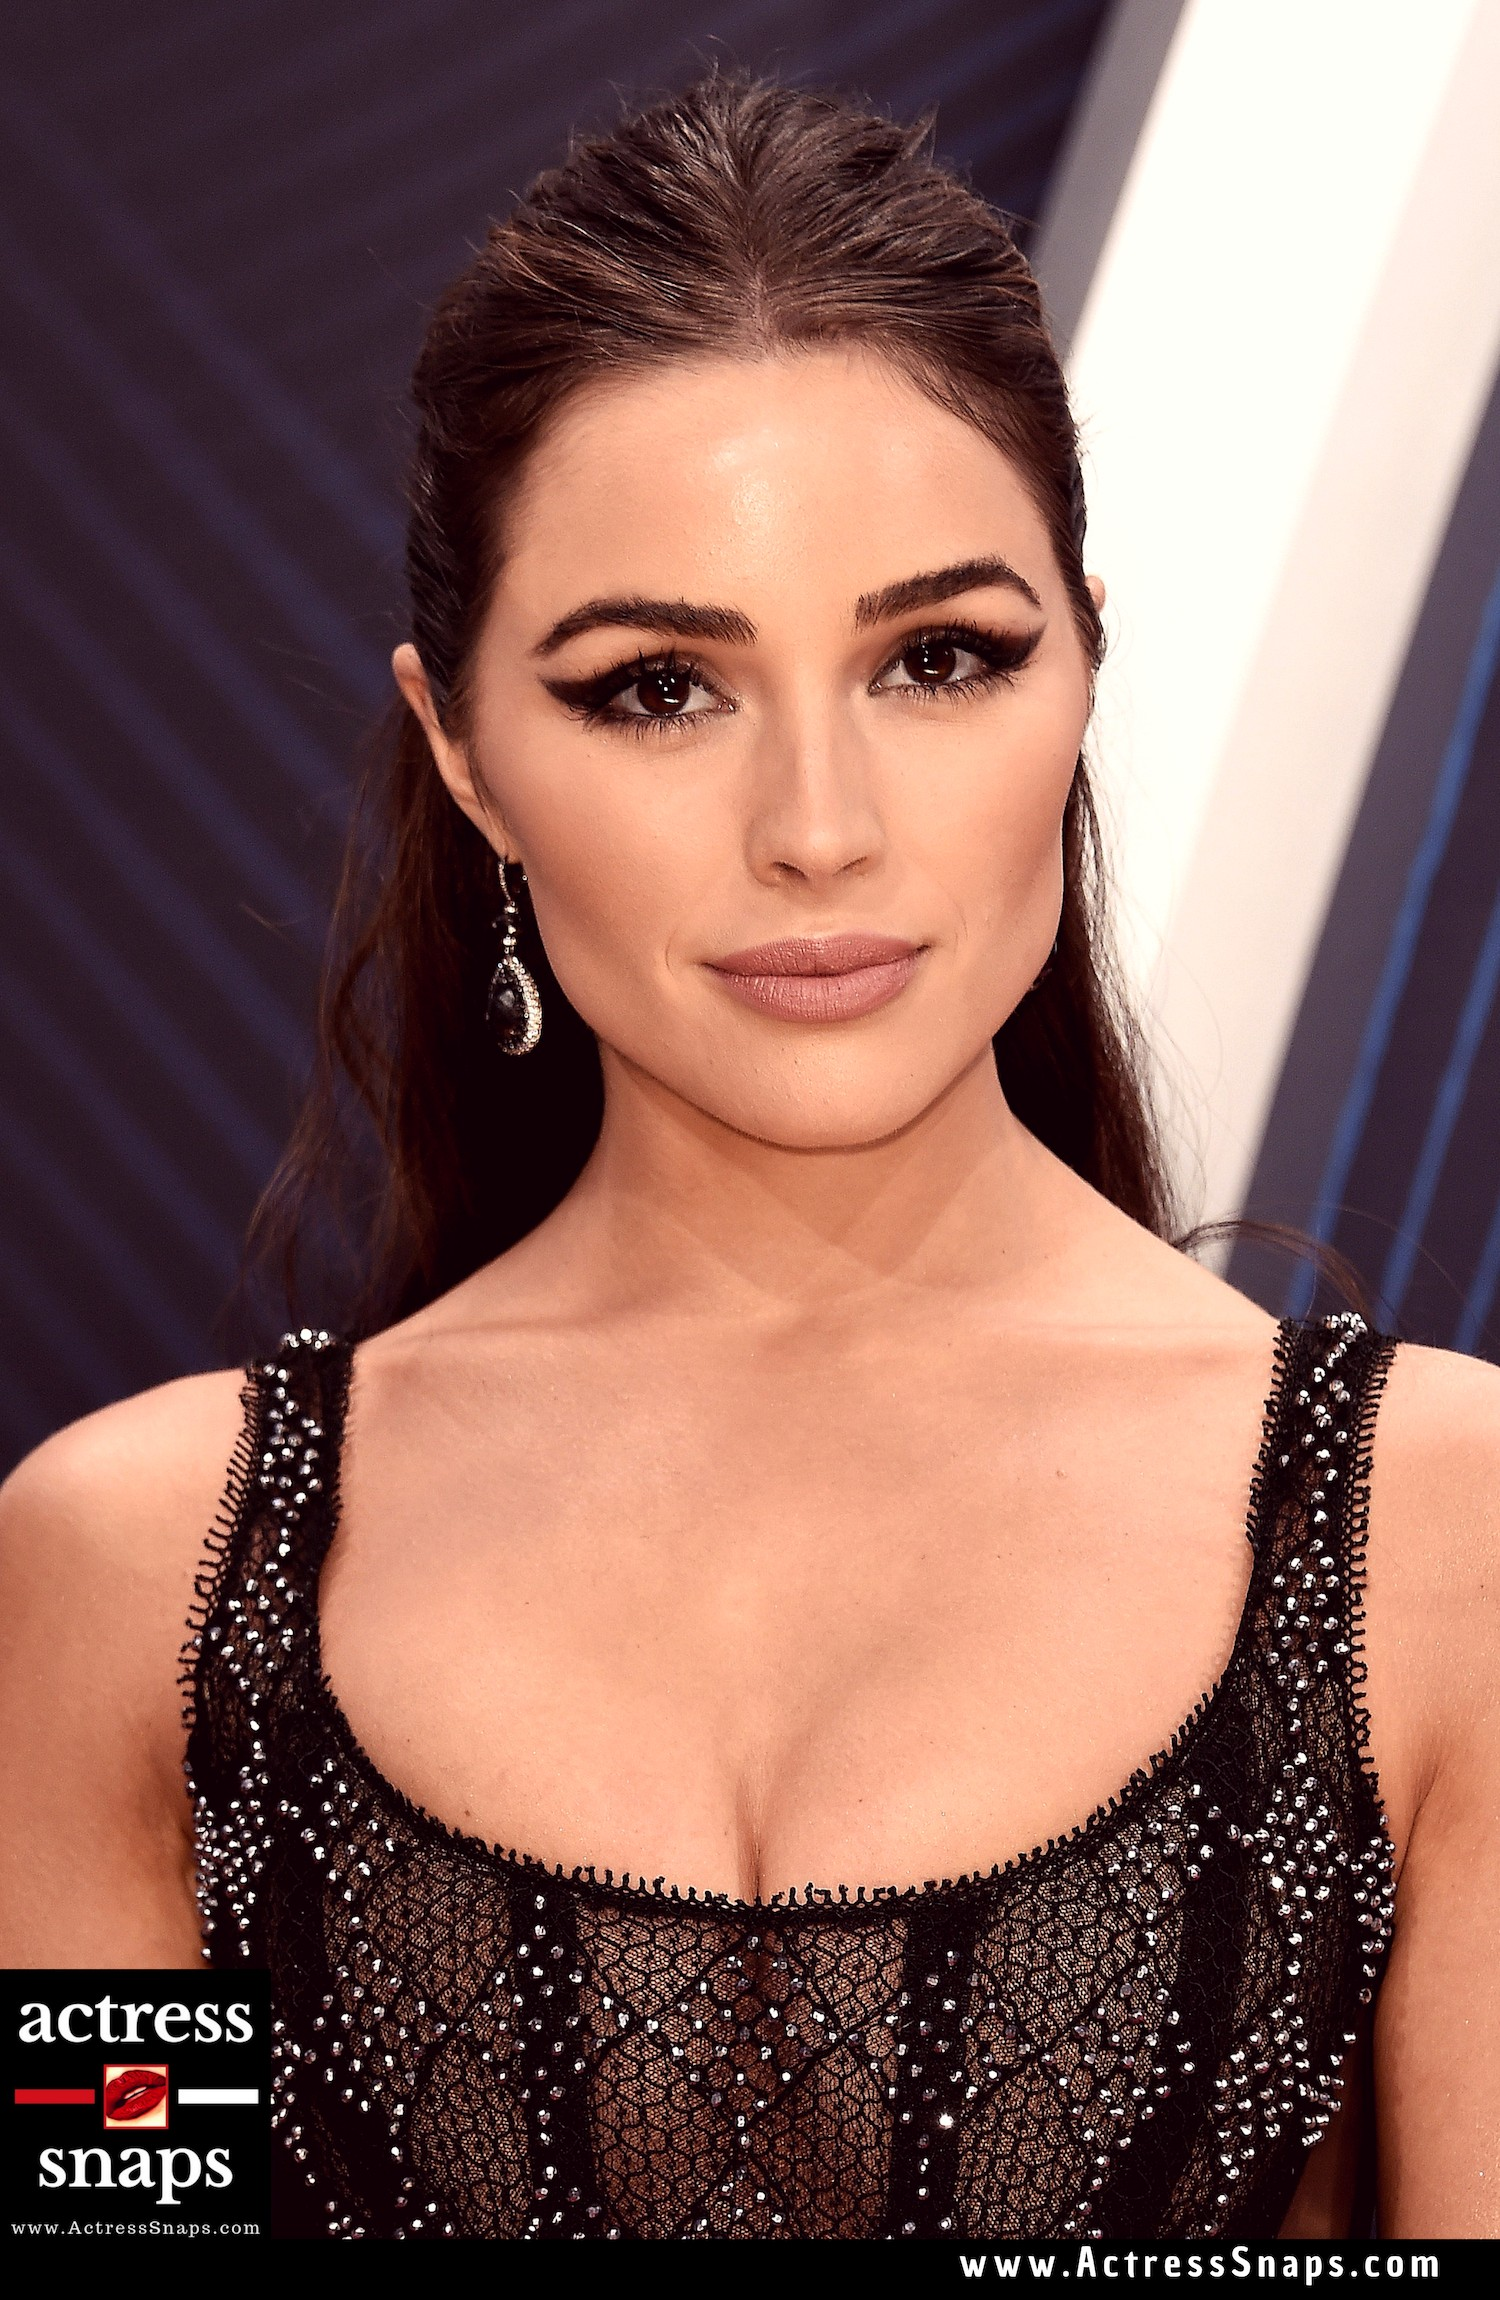 Olivia Culpo looking extremely hot wearing a see through dress at the Annual CMA Awards at Nashville